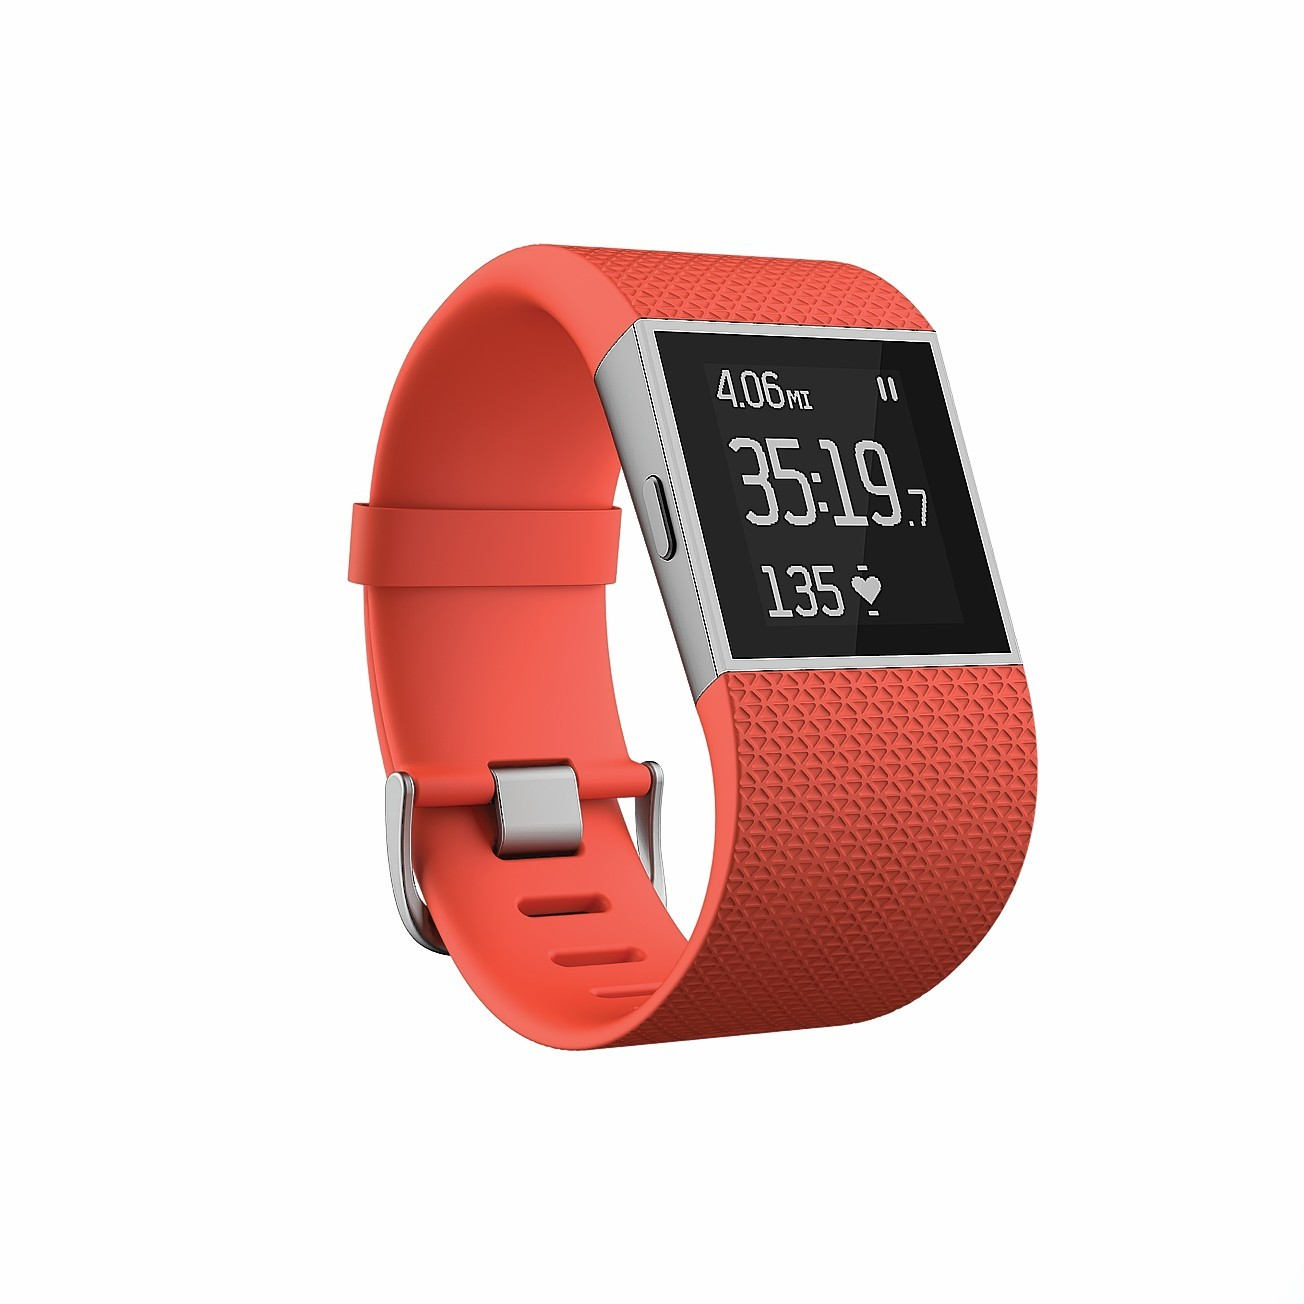 BP pilots GE's platform 'Fitbit' technology - News for the